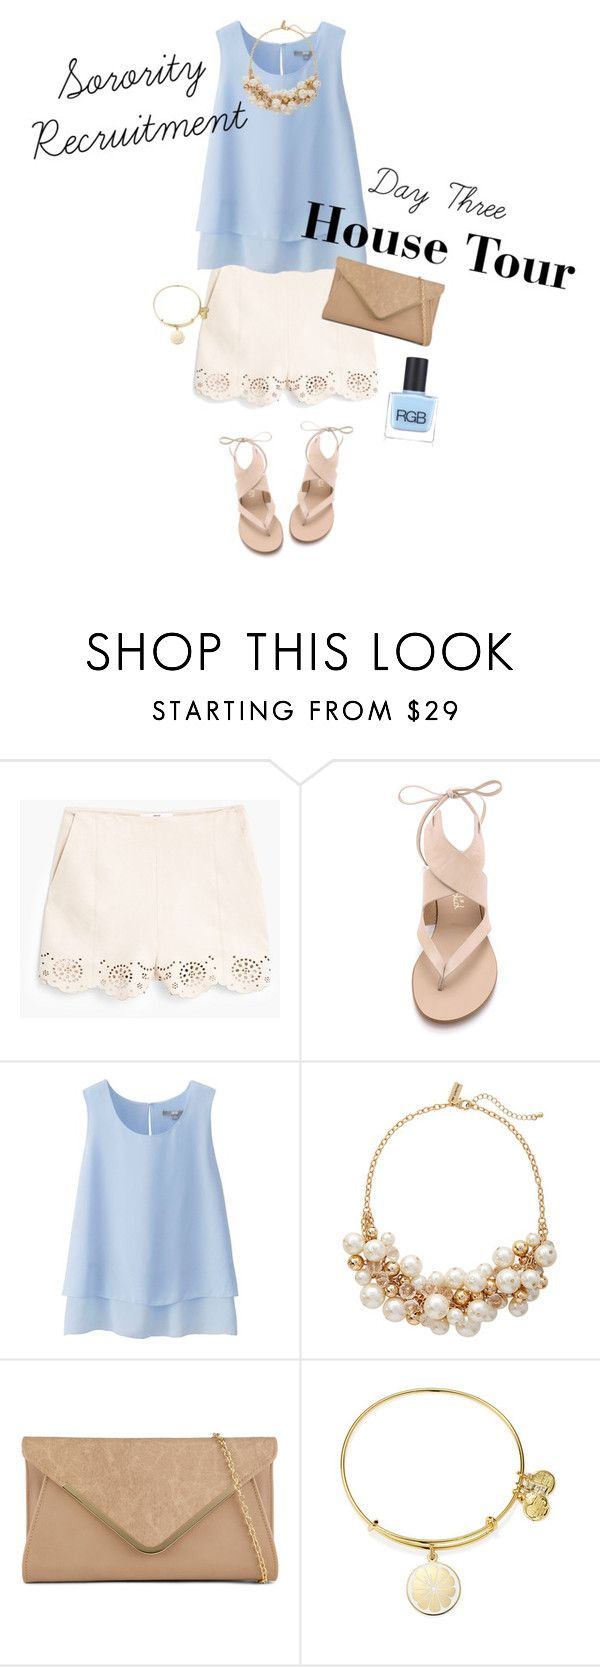 """Sorority recruitment: house tours"" by emichance ❤ liked on Polyvore featuring MANGO, Splendid, Uniqlo, The Limited, ALDO, Alex and Ani and RGB Cosmetics"